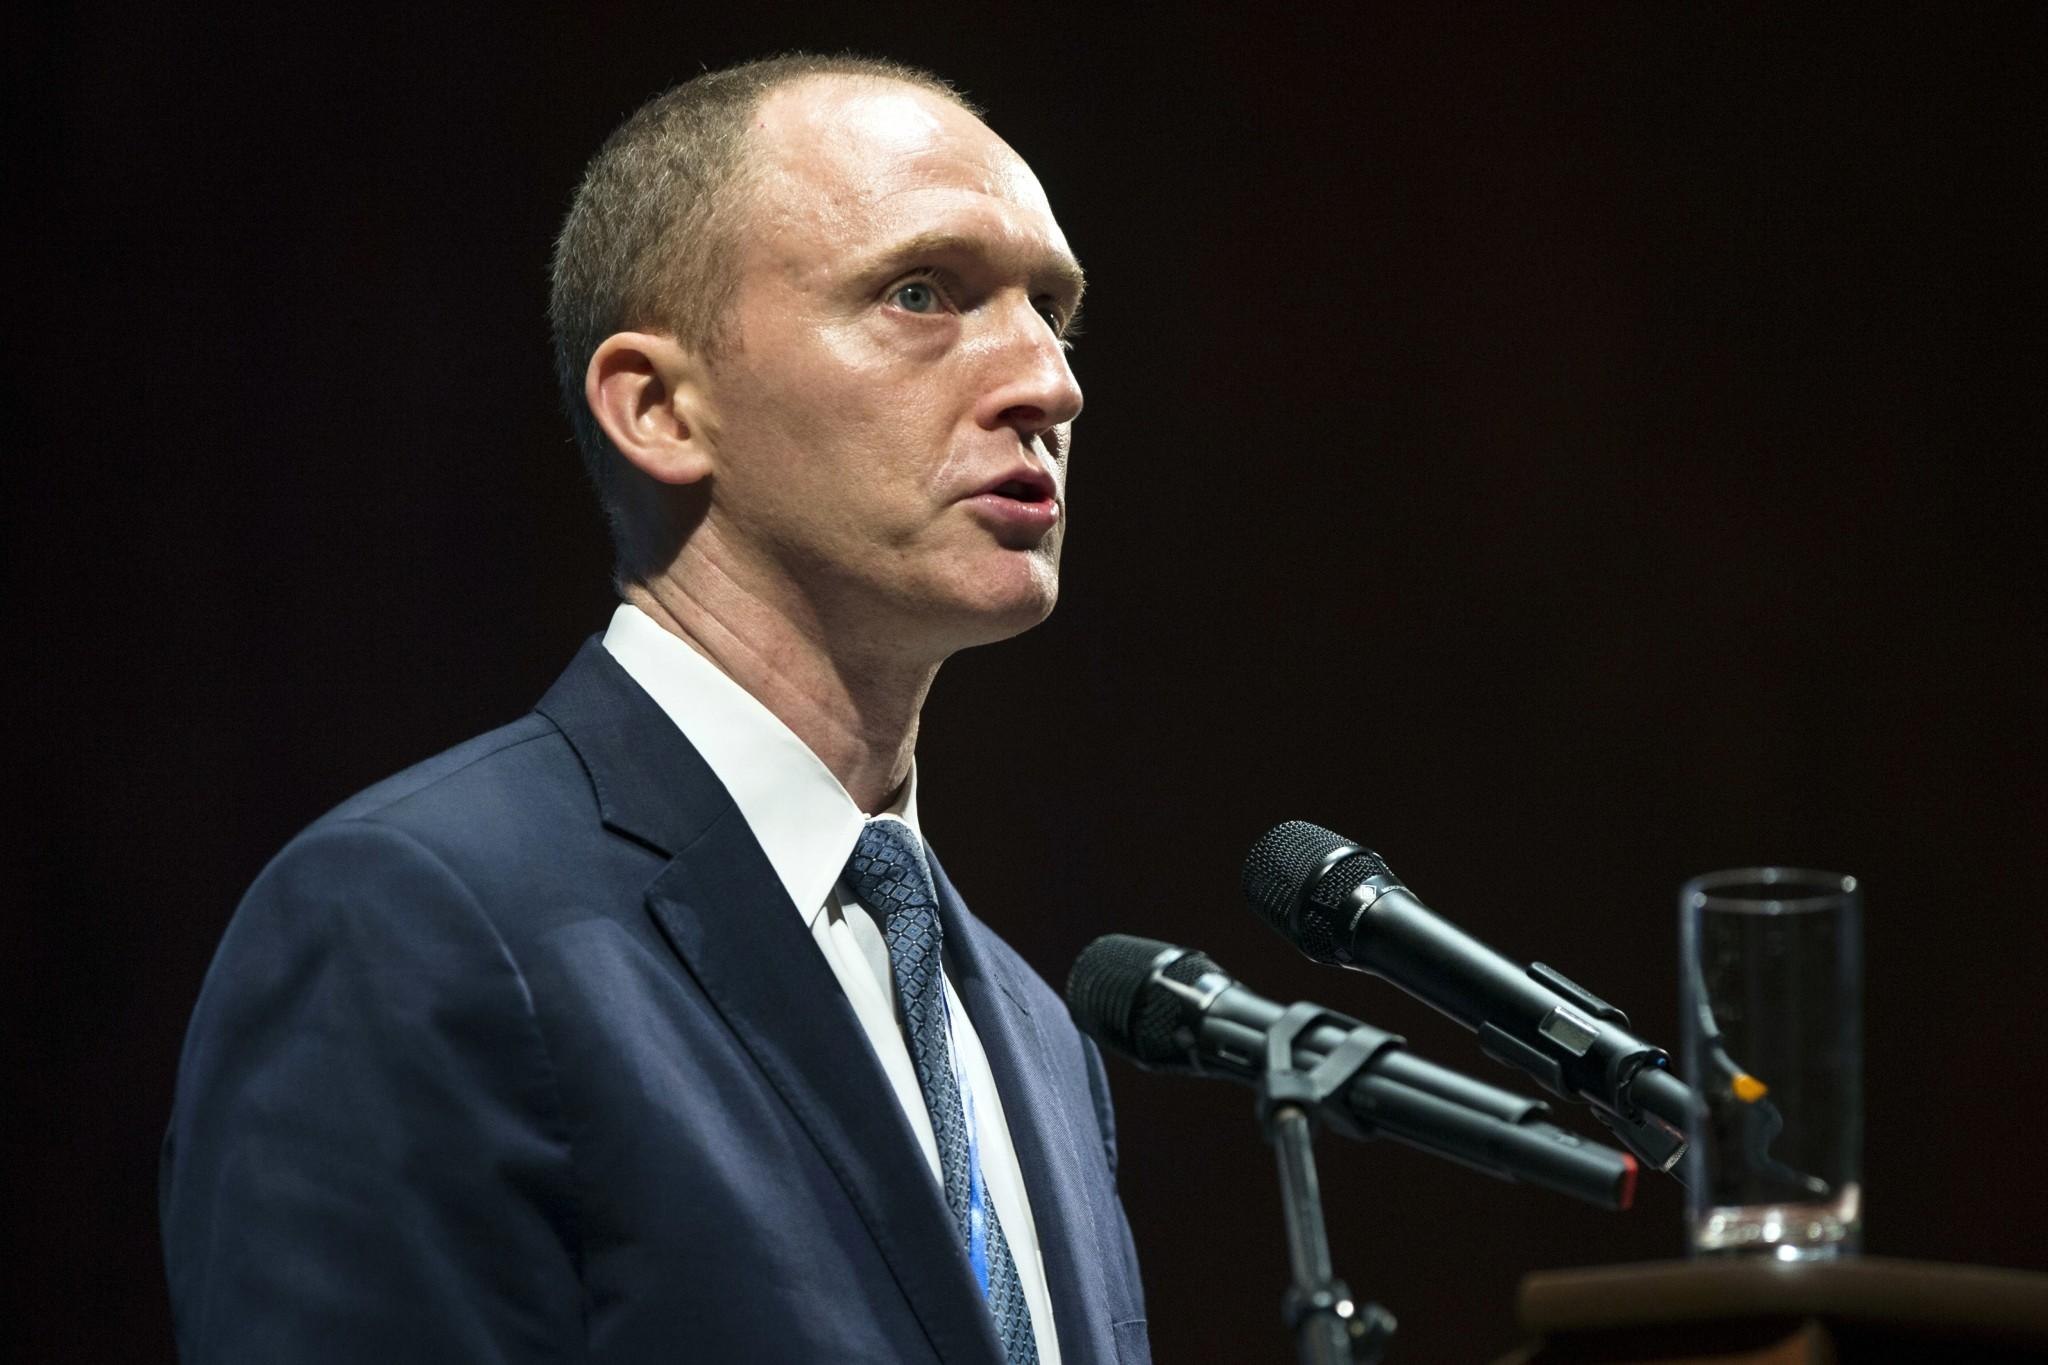 Carter Page in Moscow, July 2016